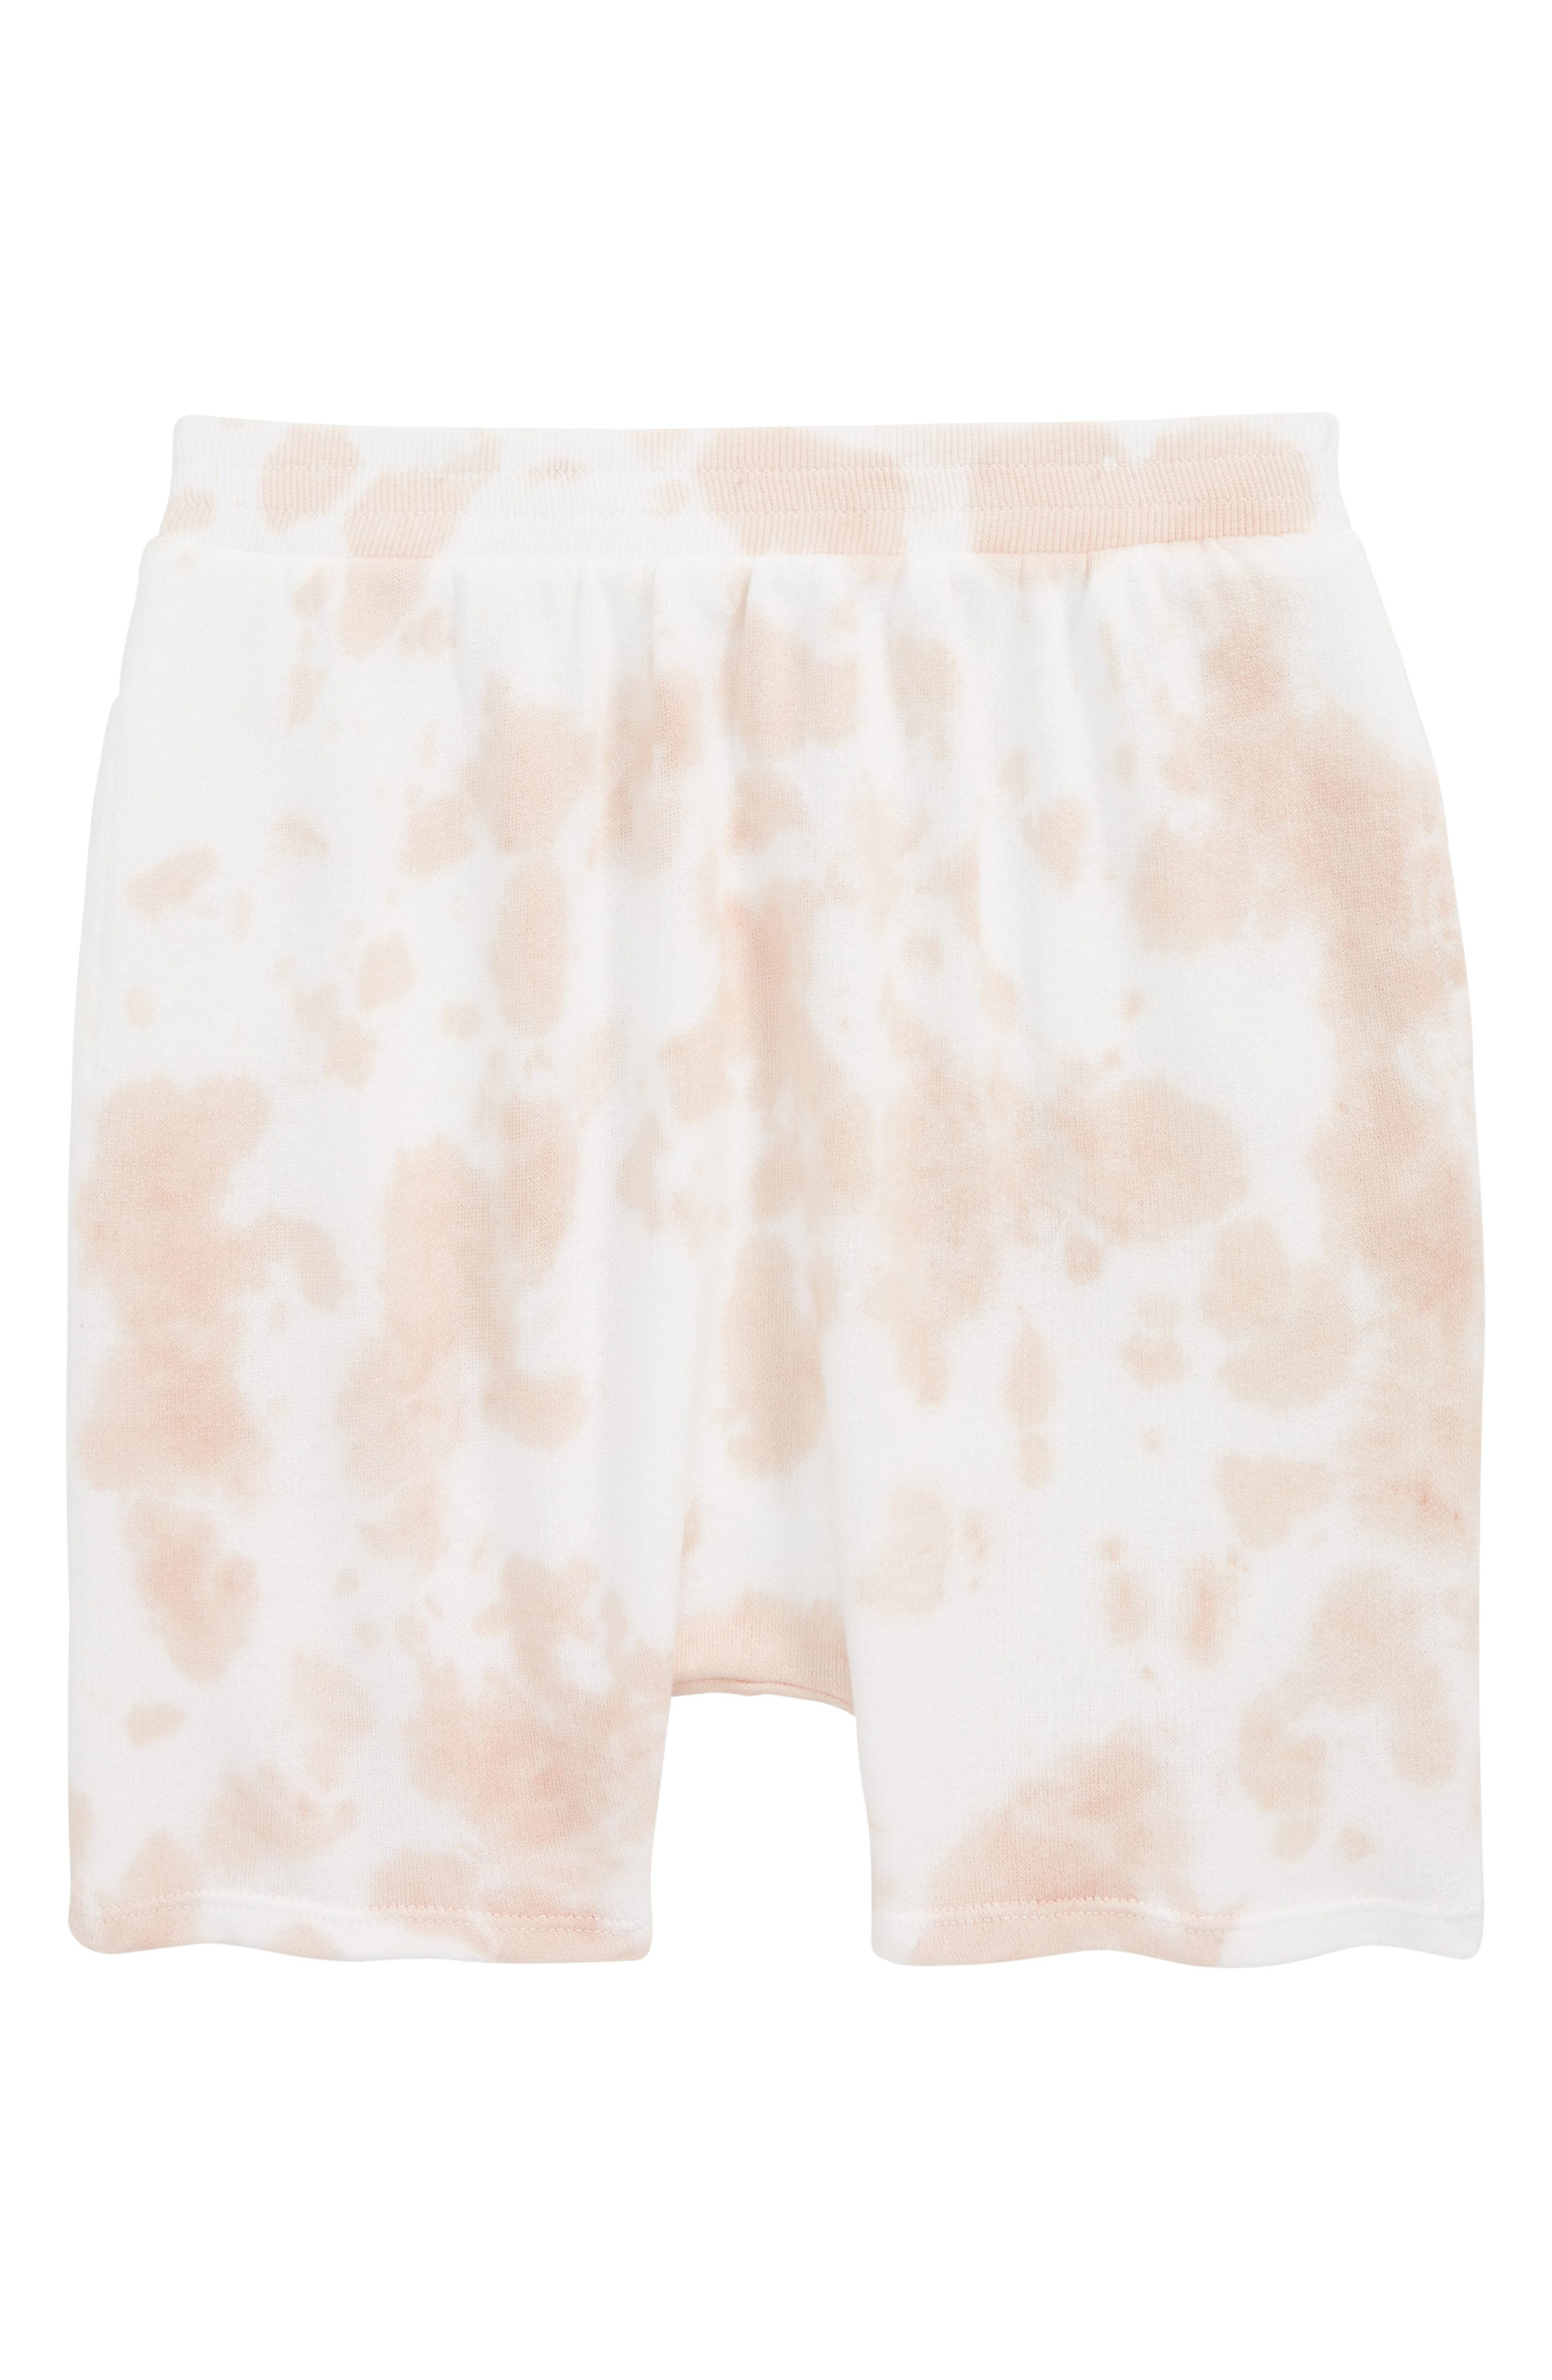 Tie Dye Shorts,                         Main,                         color, 680